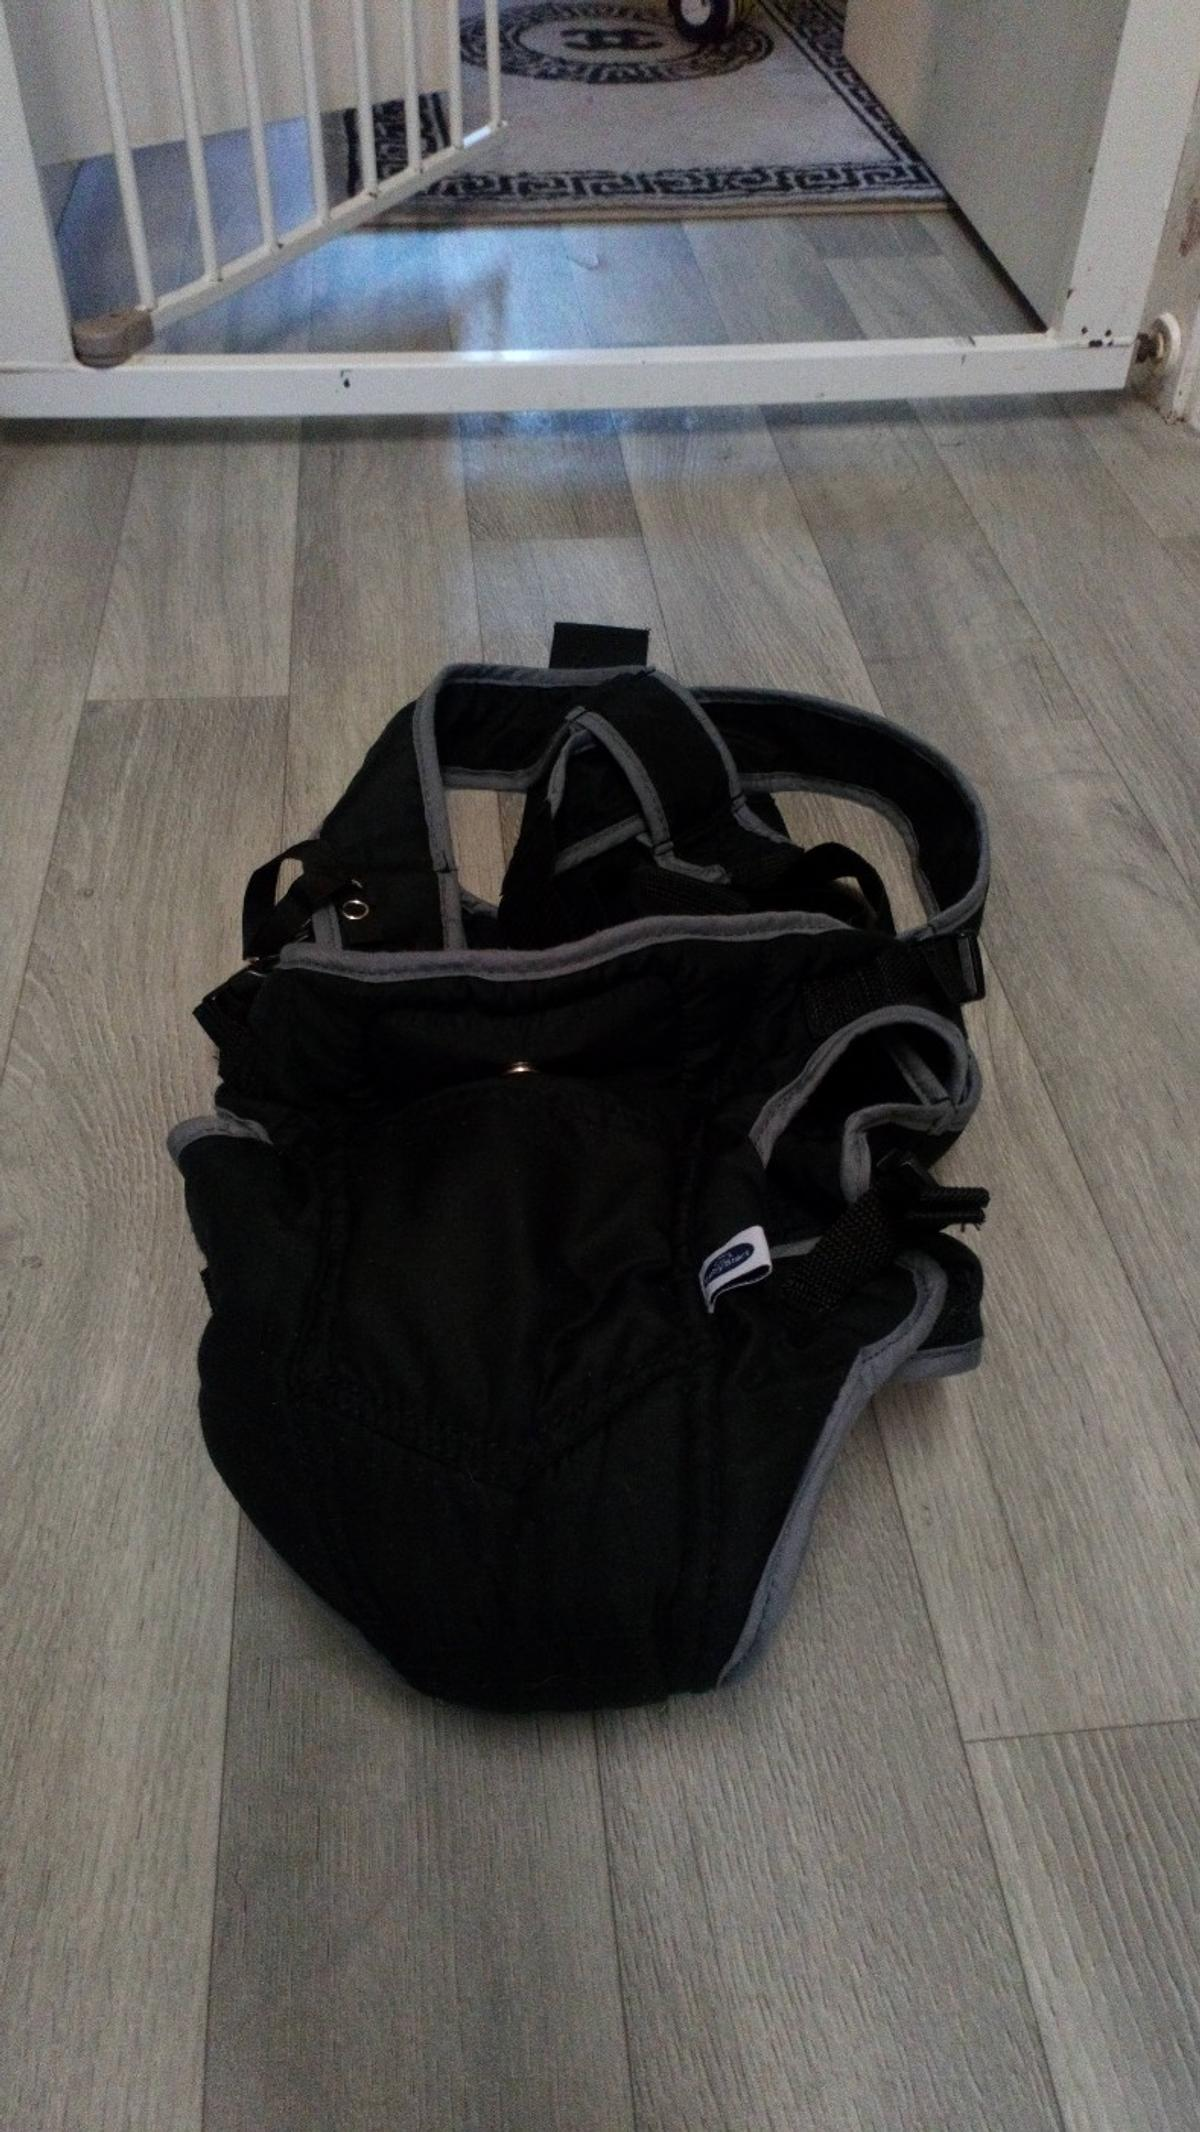 Unused new baby carrier, baby start. Will deliver locally over £5 or post at buyers expense otherwise collection only from tipton